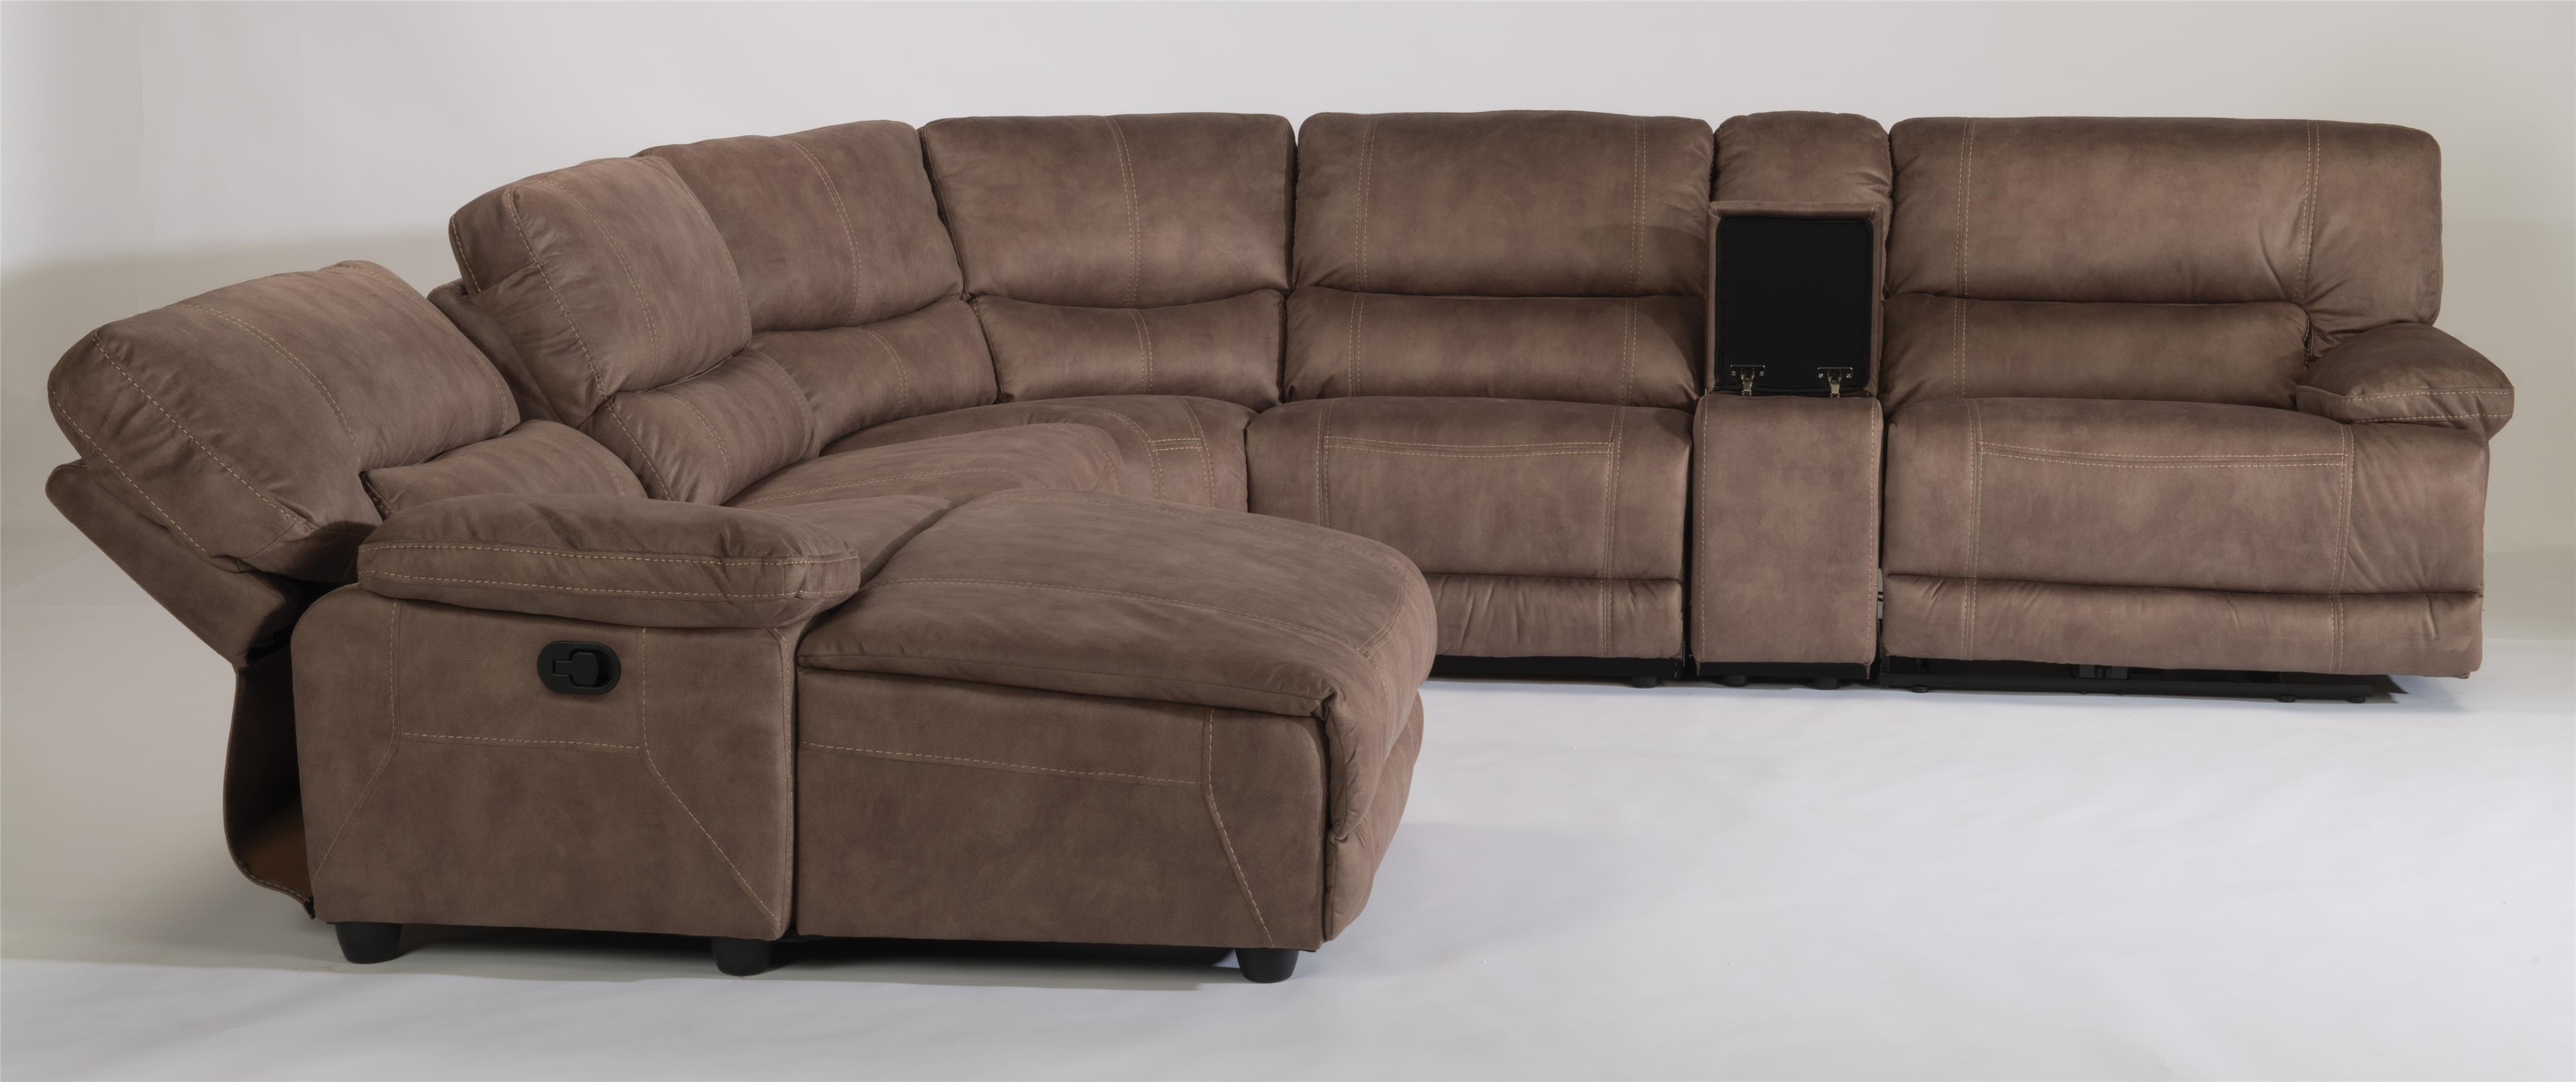 Flexsteel Latitudes Delia Six Piece Power Reclining Sectional Sofa With Laf Chaise Reeds